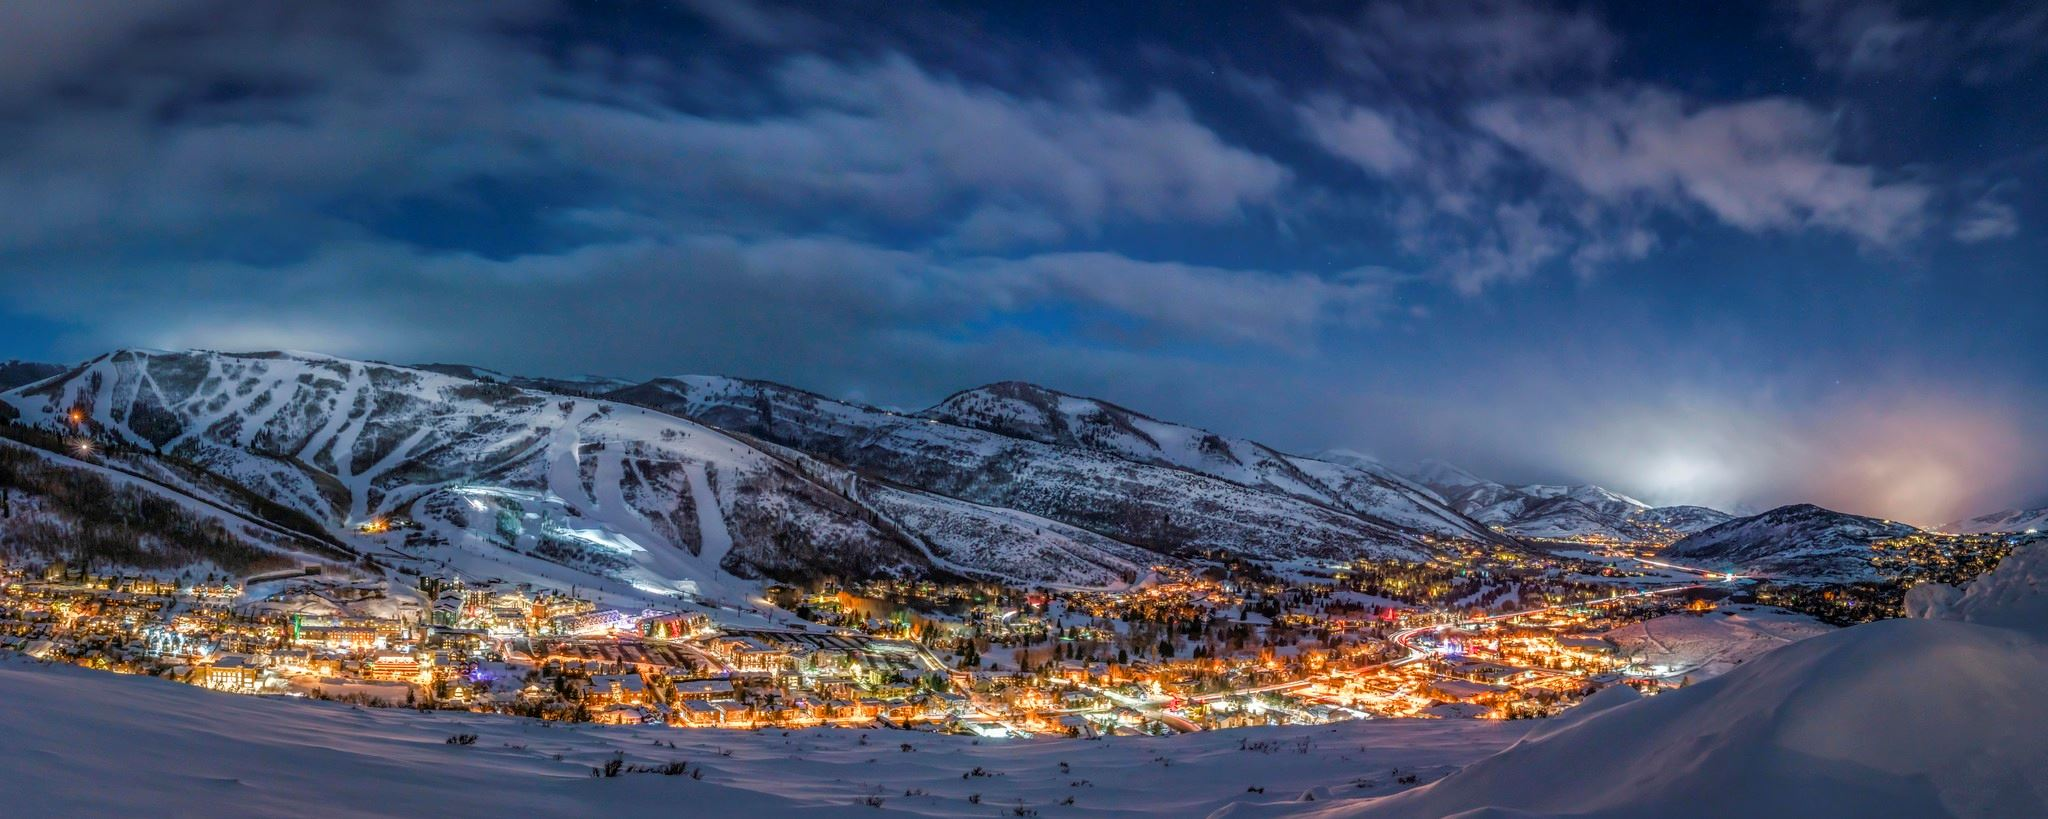 A Ski Town at Night